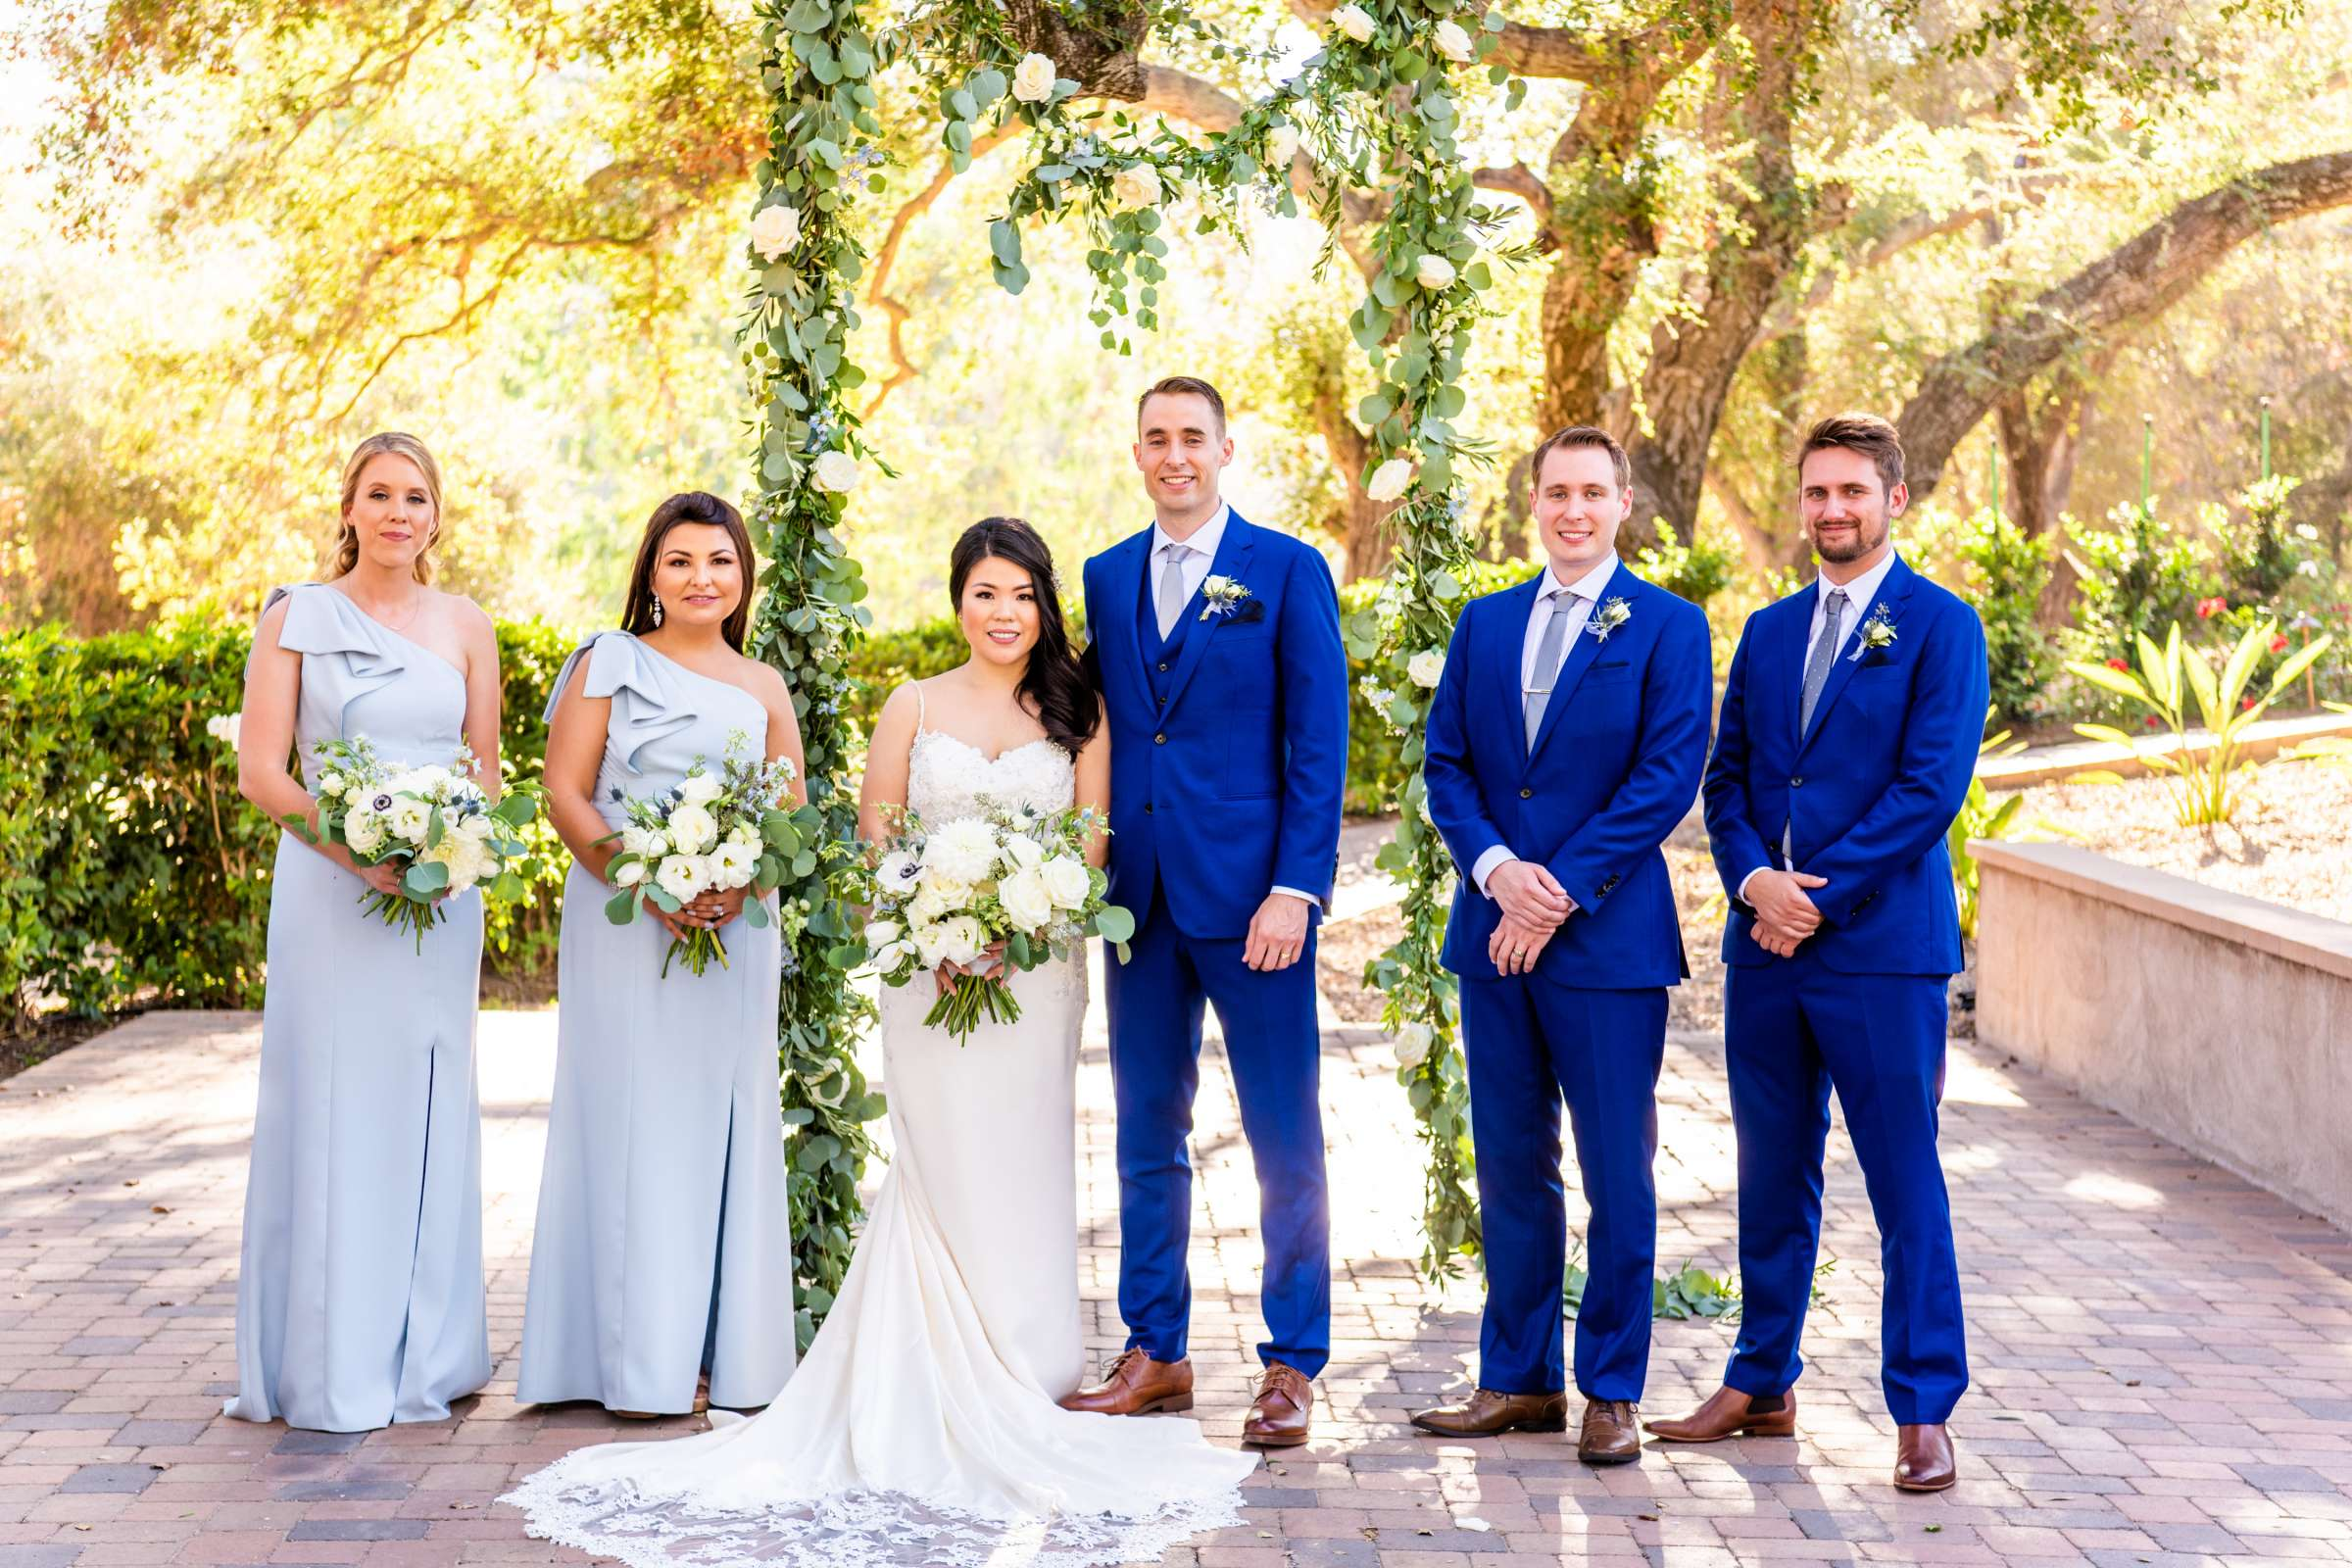 Mt Woodson Castle Wedding coordinated by I Do Weddings, Aya and Jared Wedding Photo #486956 by True Photography